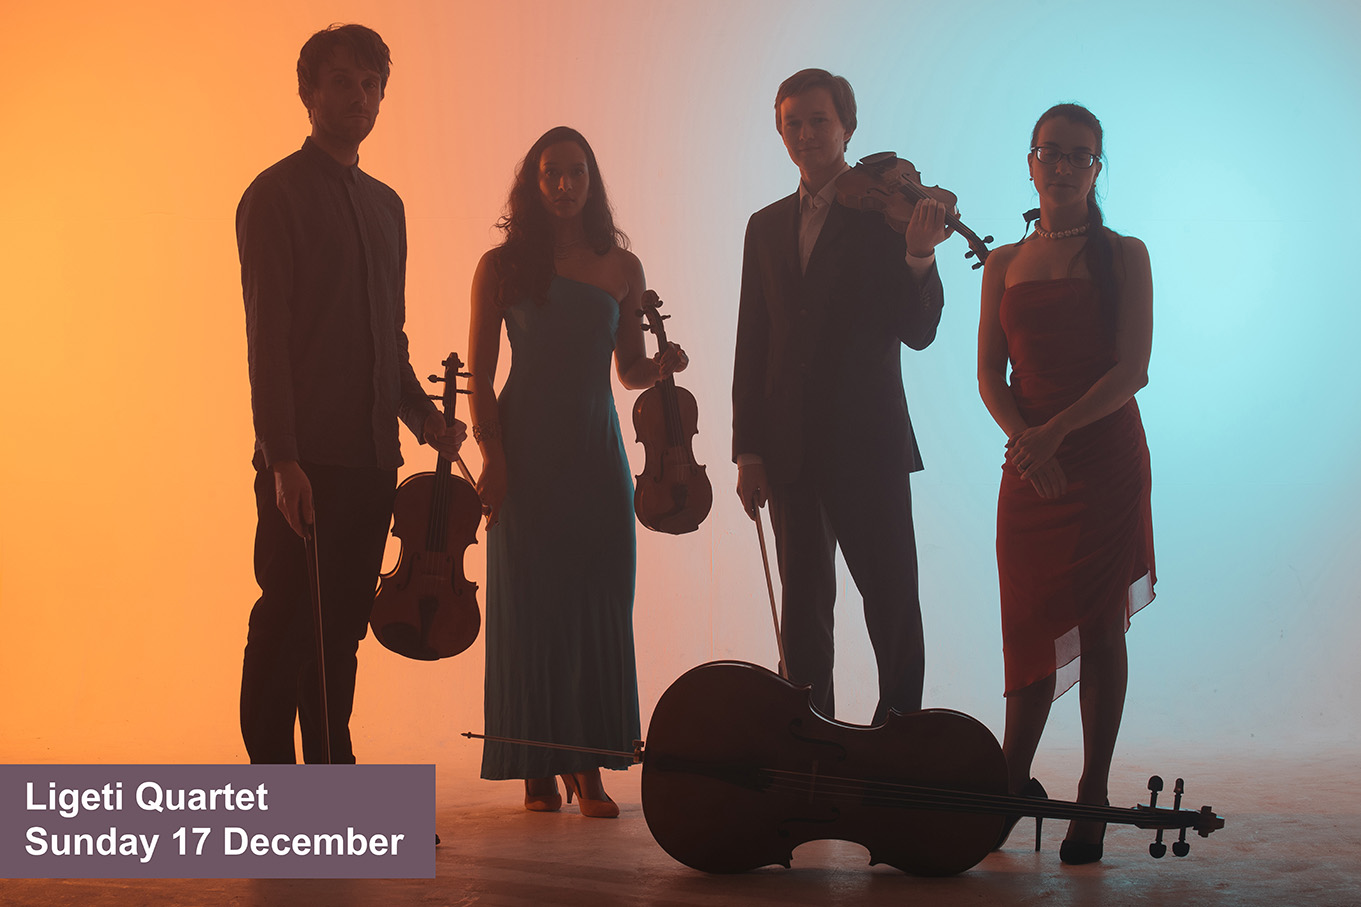 Ligeti Quartet, Sunday 17 December